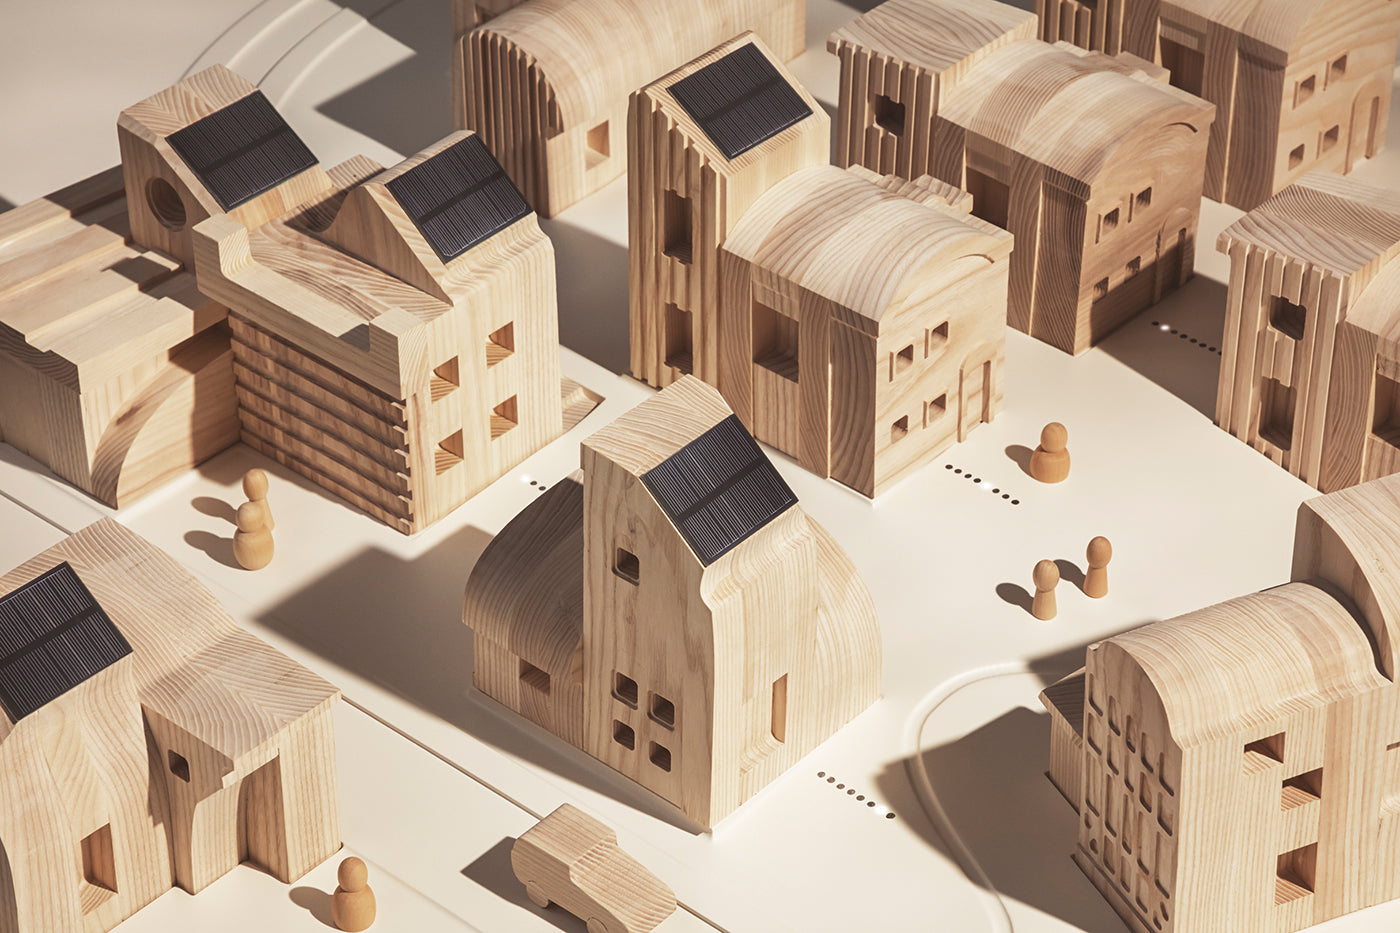 Solar Ville by Space10. Photo: Irina Boersma